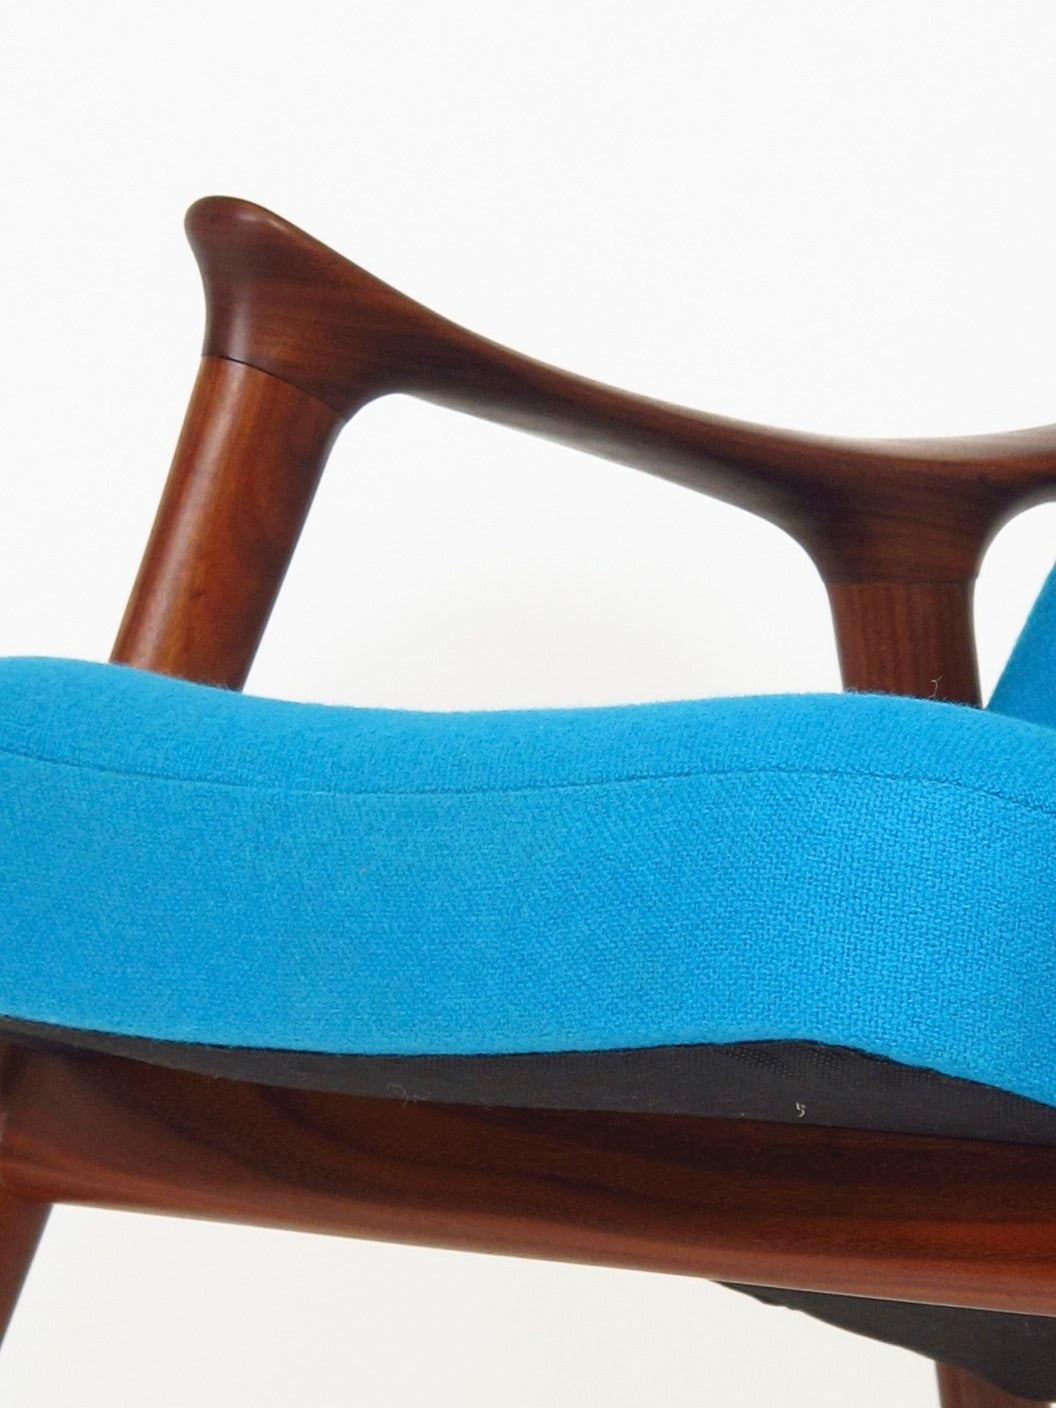 this mid century danish rocking chair is no longer available